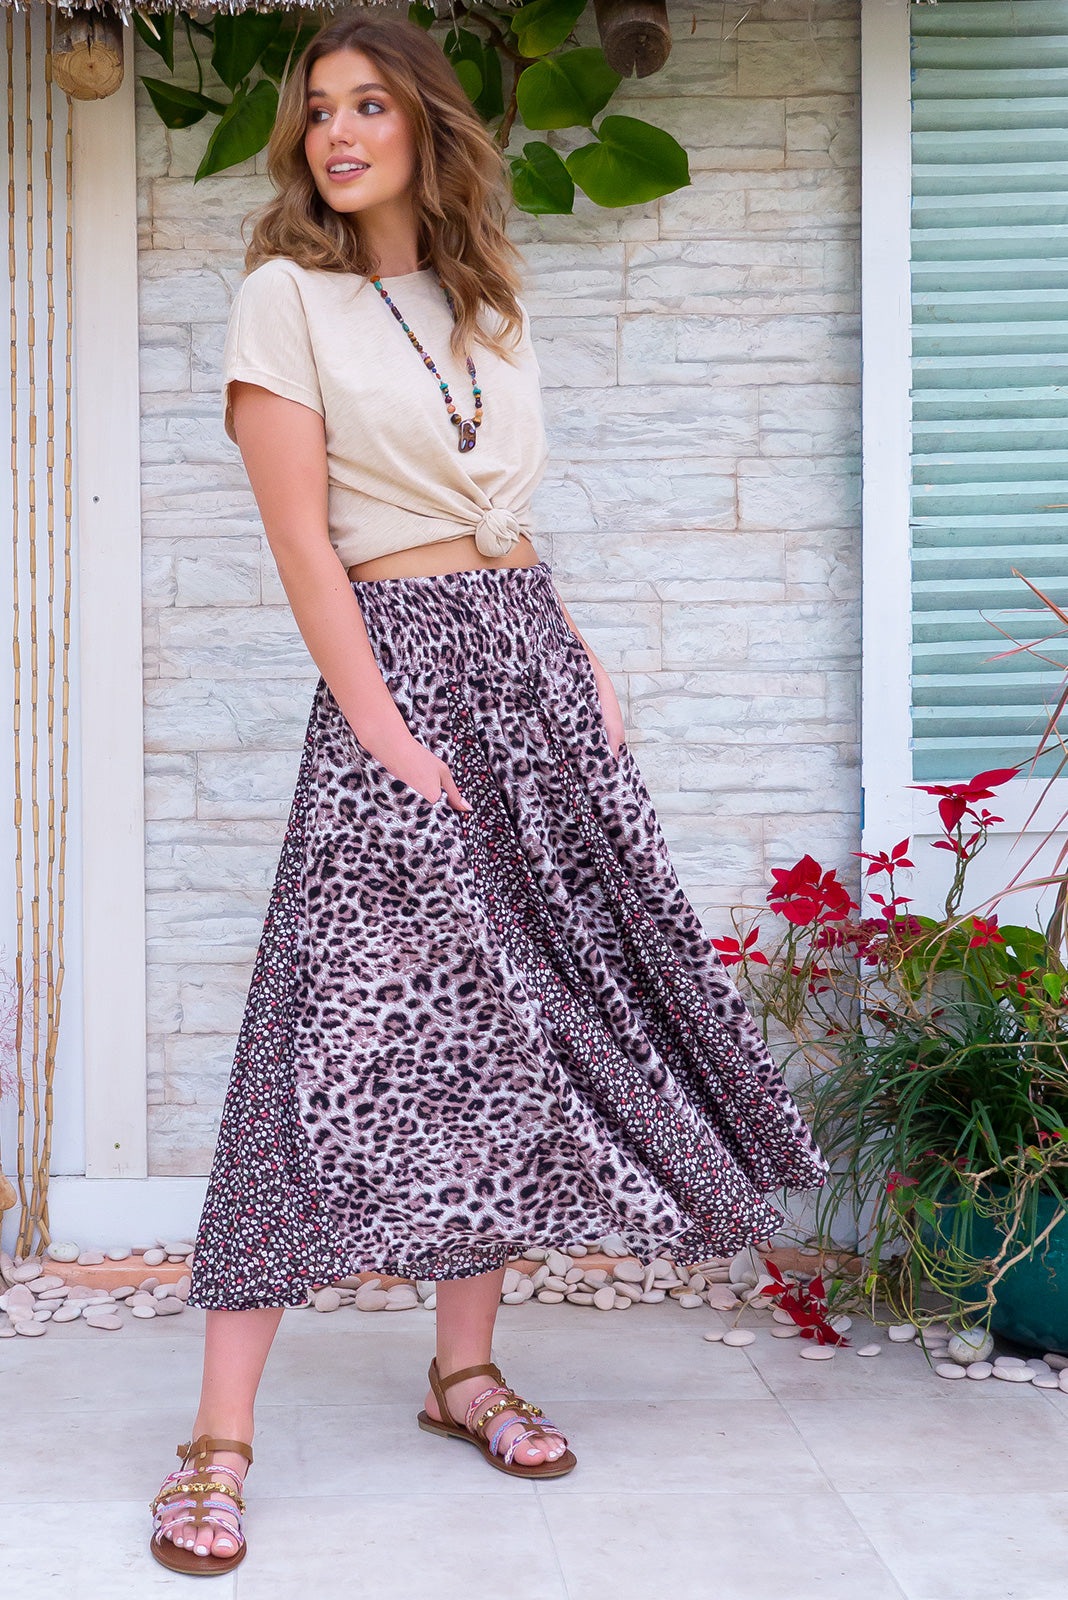 Etosha Sable Wild Skirt - Bohemian leopard and floral skirt in cocoa and neutral tones made from 100% rayon fabric. Breathable and light, comfortable to wear. Includes side pockets and an elastic shirred waist band. Midi length with fishtail inserts for full circle skirt effect. Designed in Brisbane, Australia